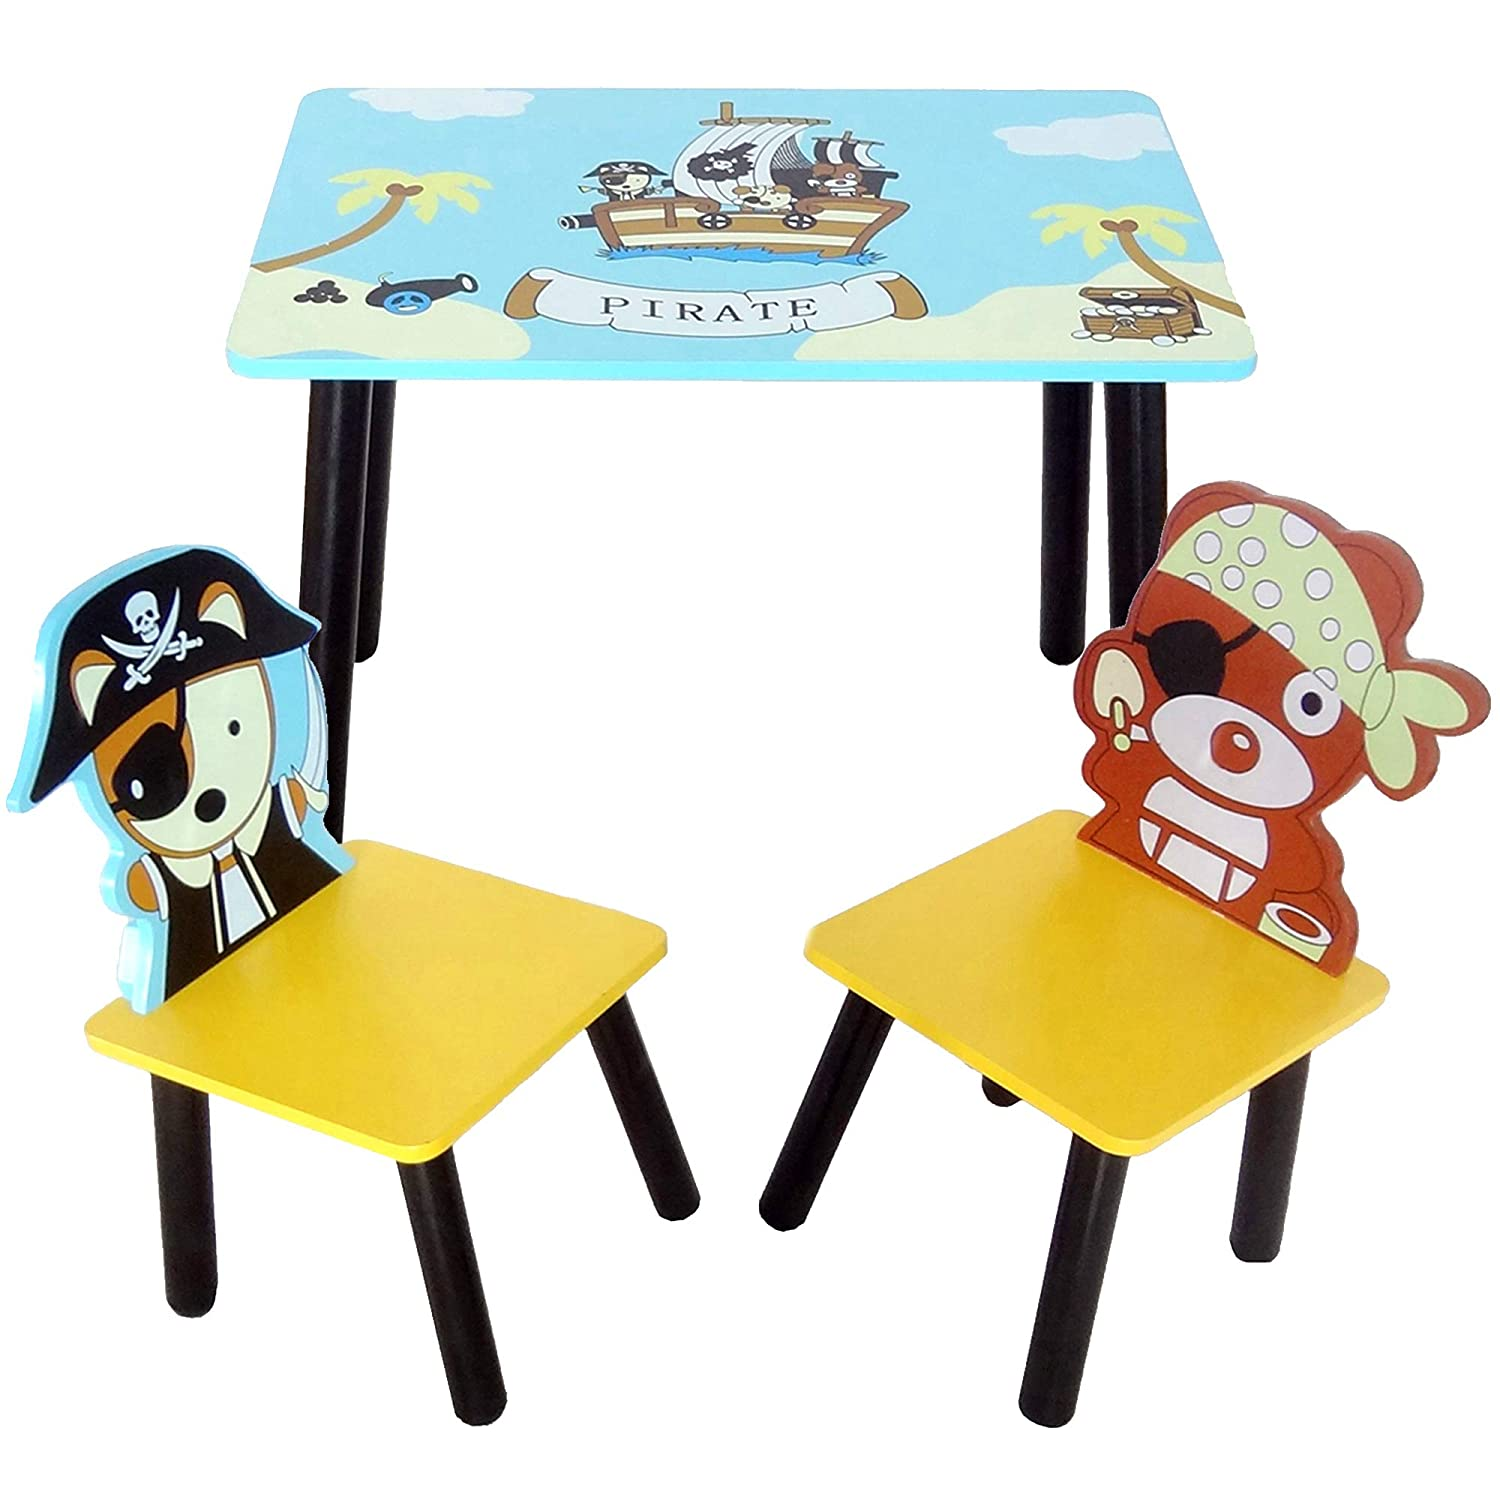 Bebe Style Pirate Table mit zwei Chairs, Toddler Size, Blue